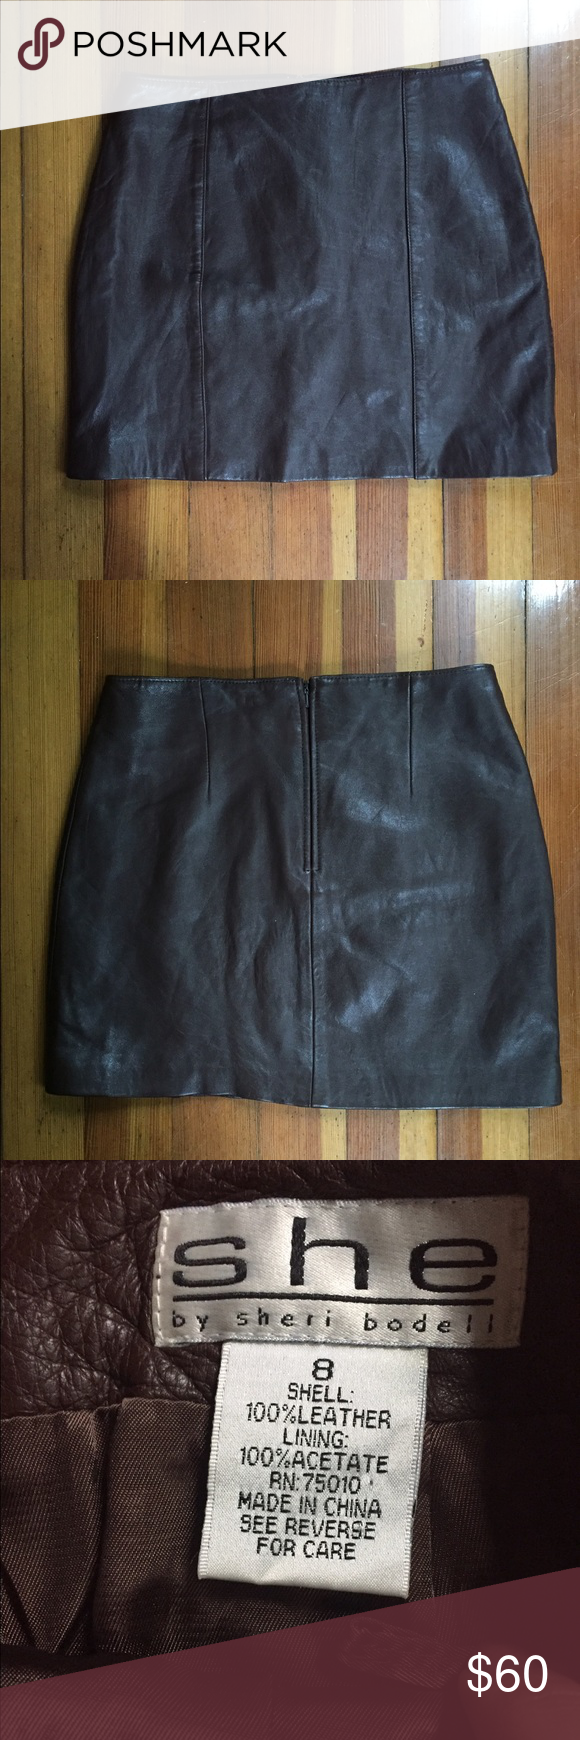 """✨Dropped Today Only✨ Sheri Bodell Leather Skirt Great vintage piece of SHE by Sheri Bodell. 100% genuine leather mini skirt in a lovely deep brown. Color best reflected in cover photo (all items in this outfit are for sale 🤗). Size 8 but please refer to measurements! Laying flat: waist 13.5, hips 18"""", length 15"""". Offers welcome. Bundle up for 20% for 2+ items. 🌰. Sheri Bodell Skirts Mini"""